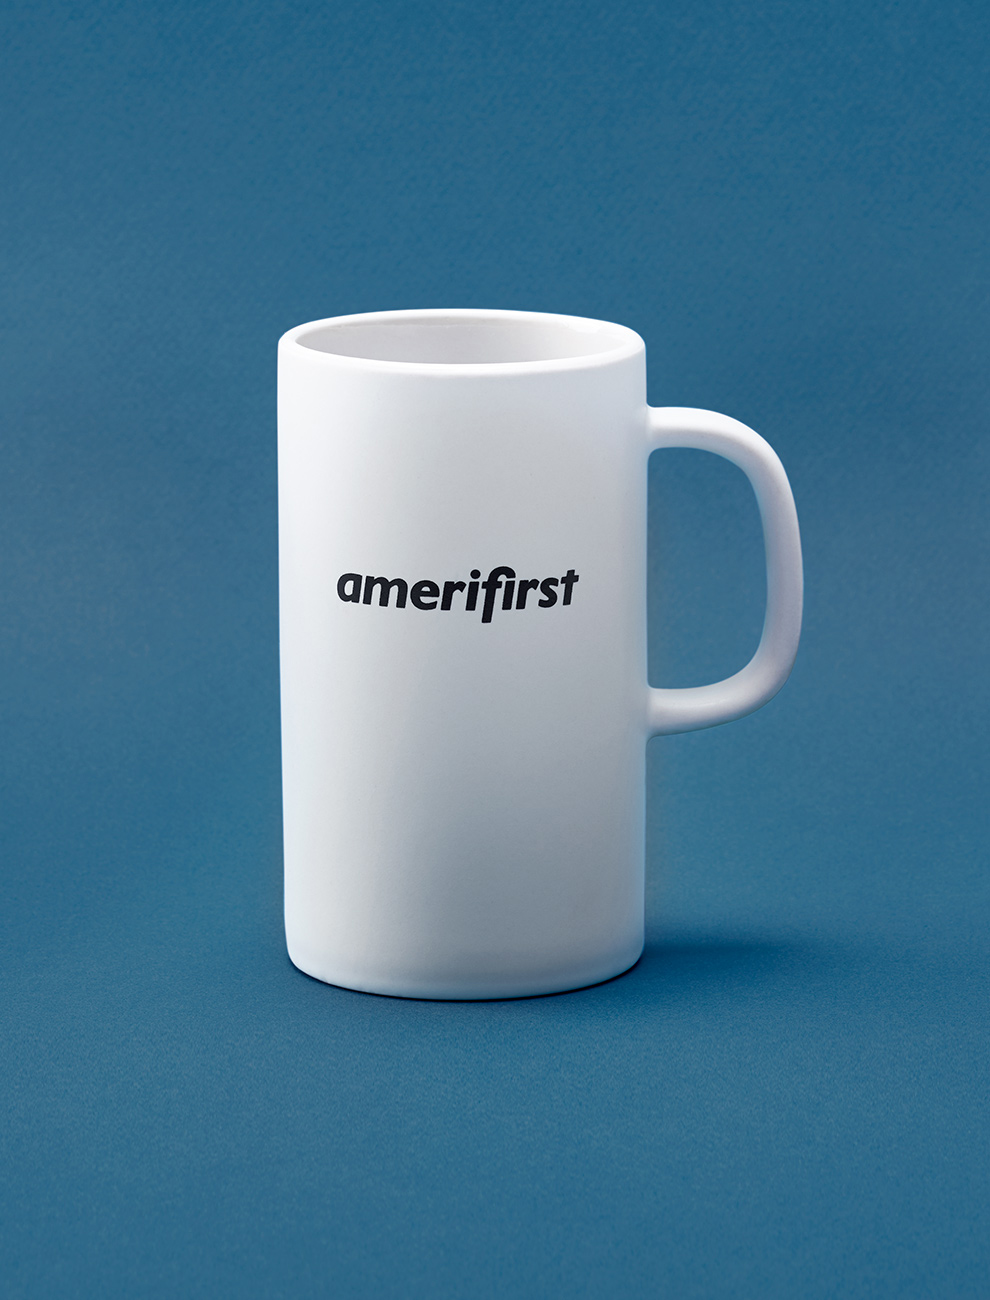 Amerifirst coffee cup.